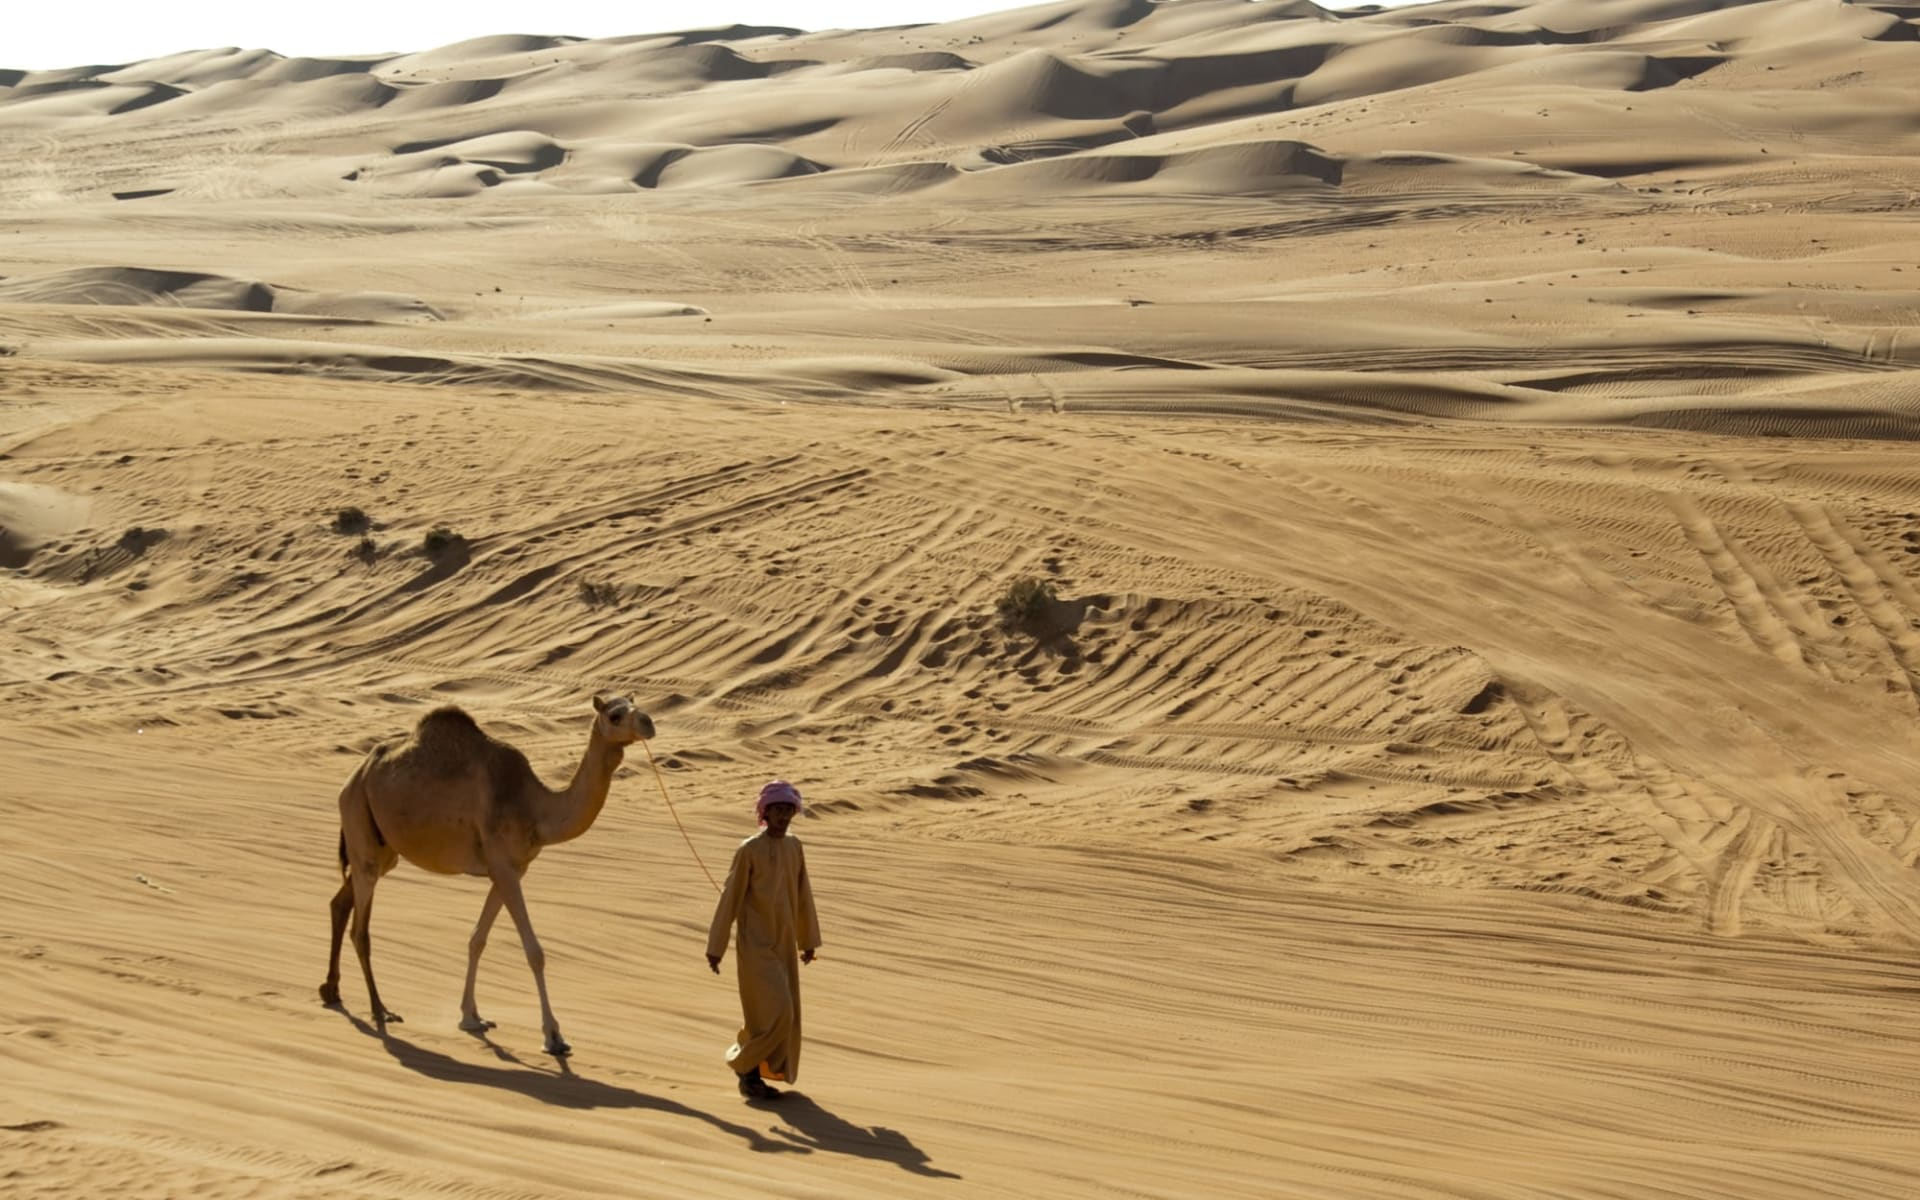 Oman Offroad-Abenteuer ab Muscat: Camel in the desert